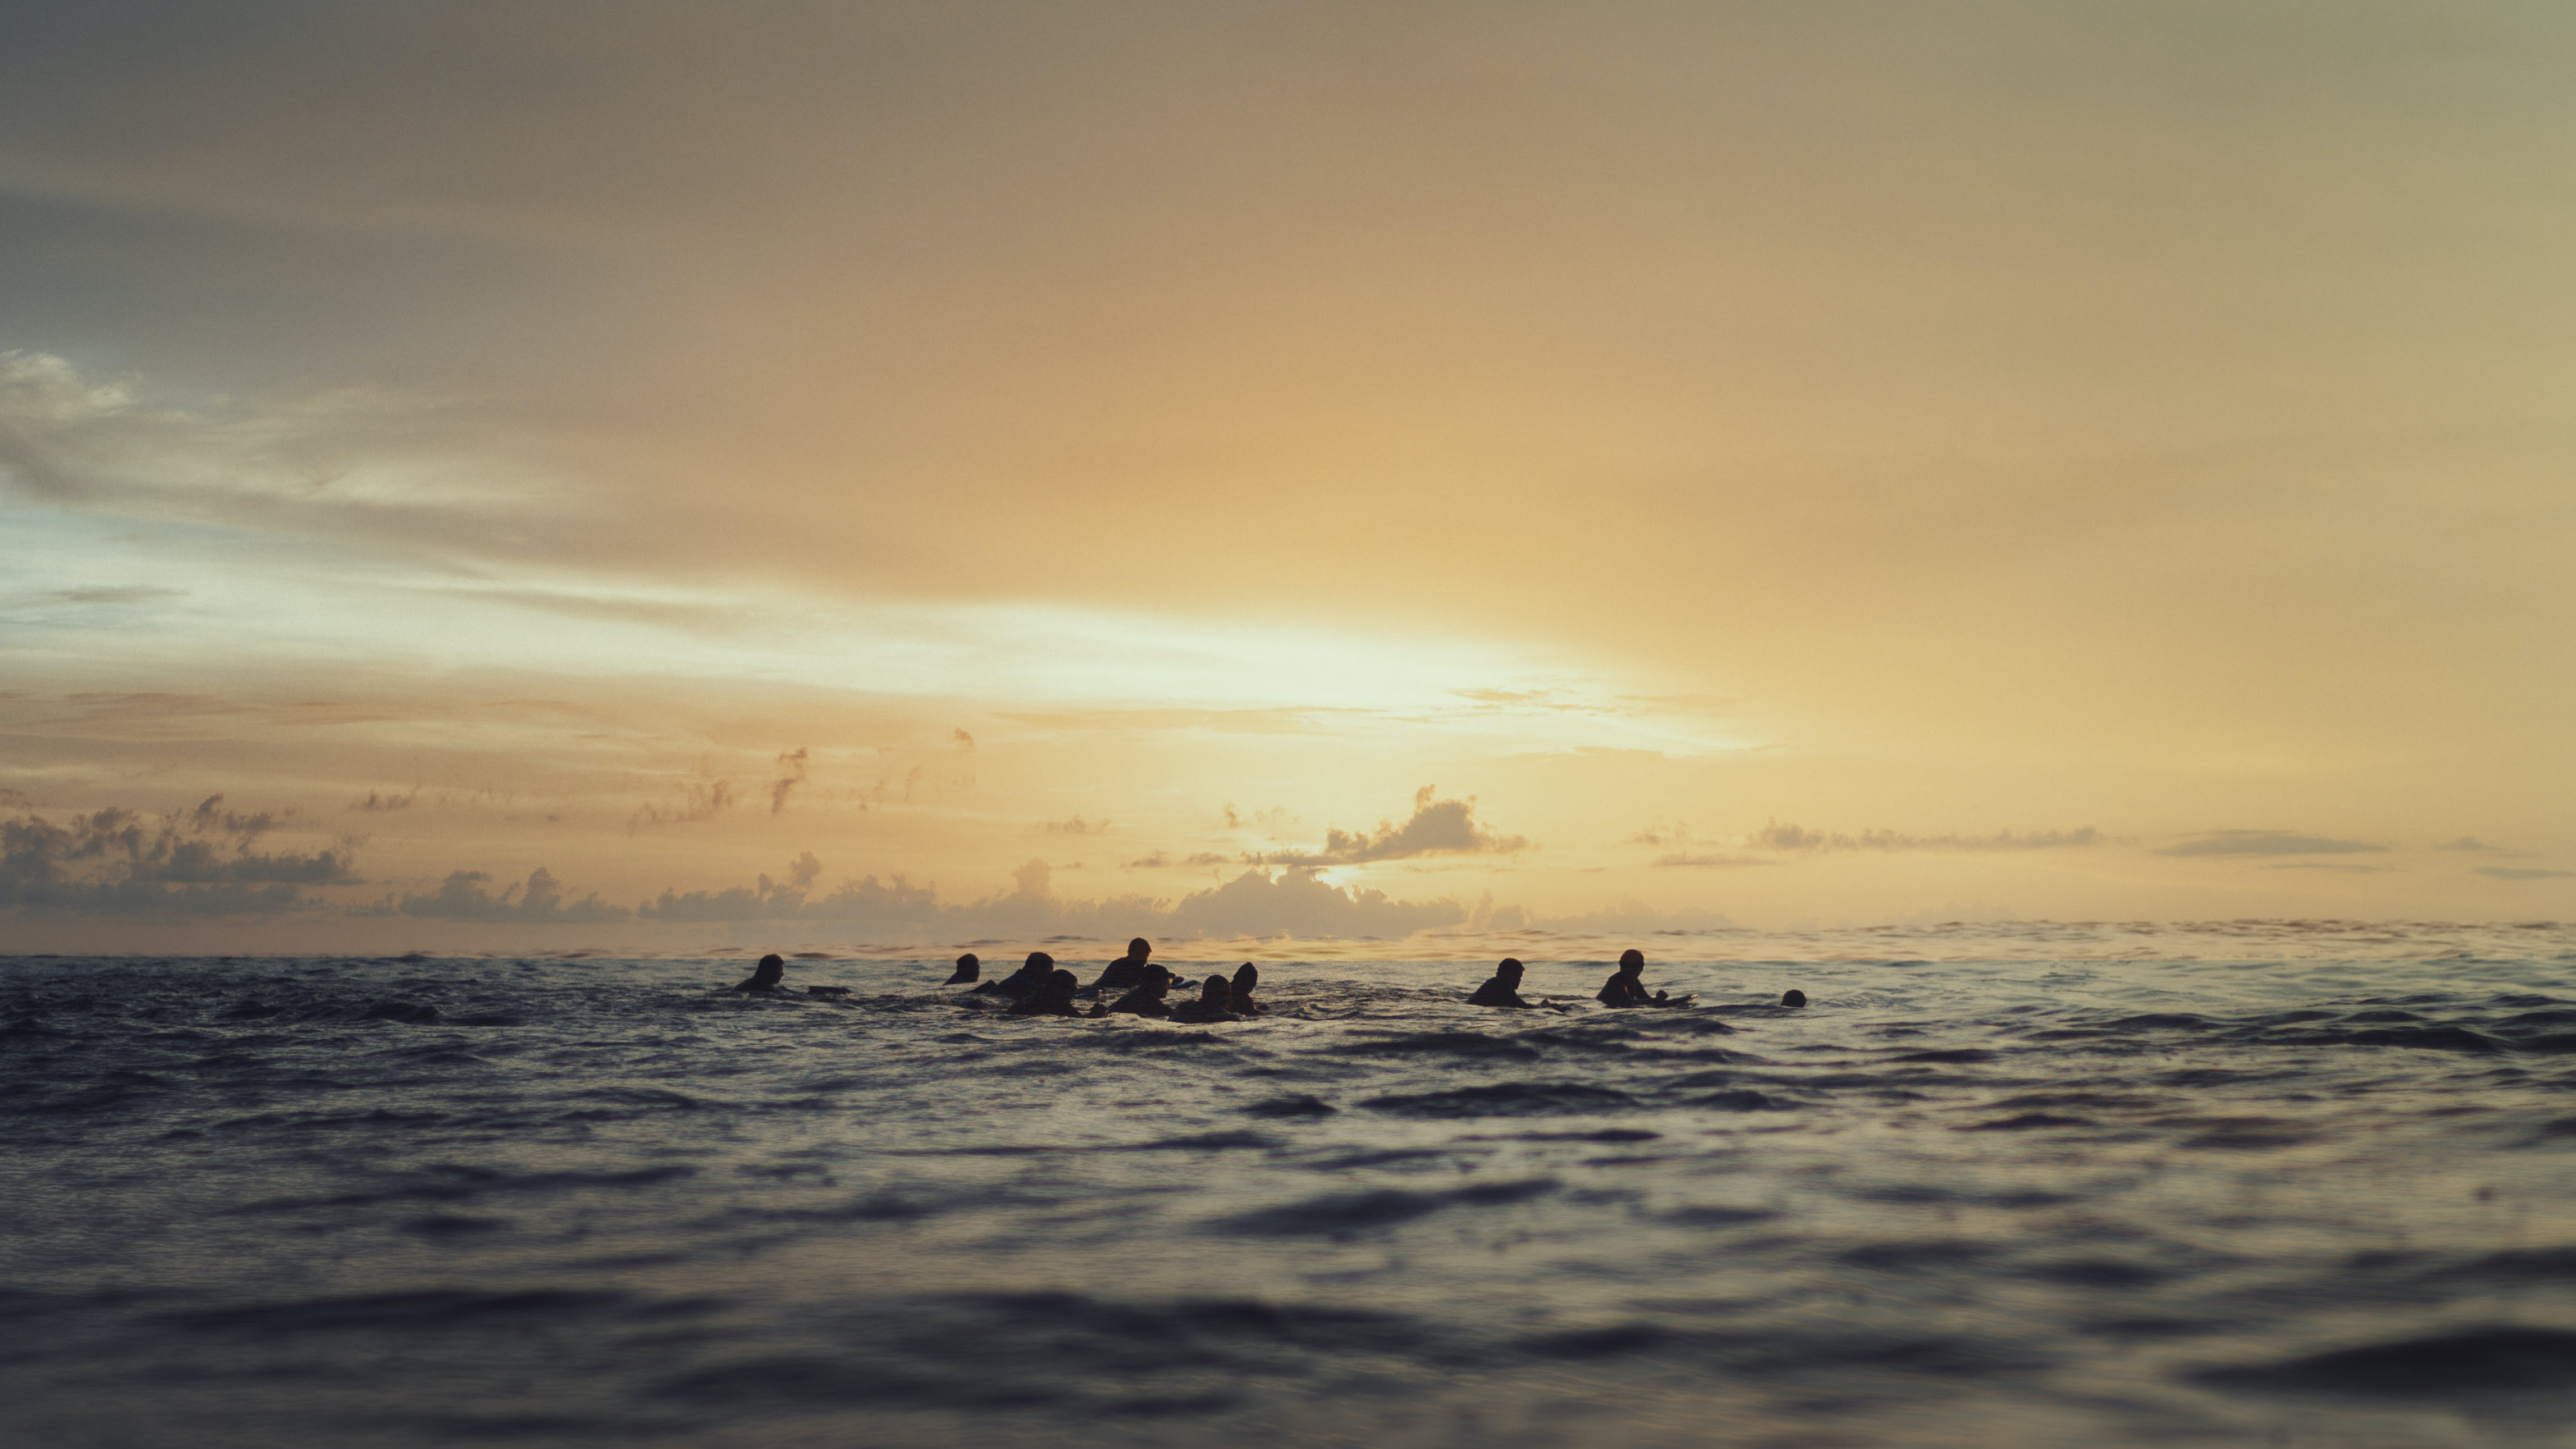 People Swimming on Ocean during Sunset